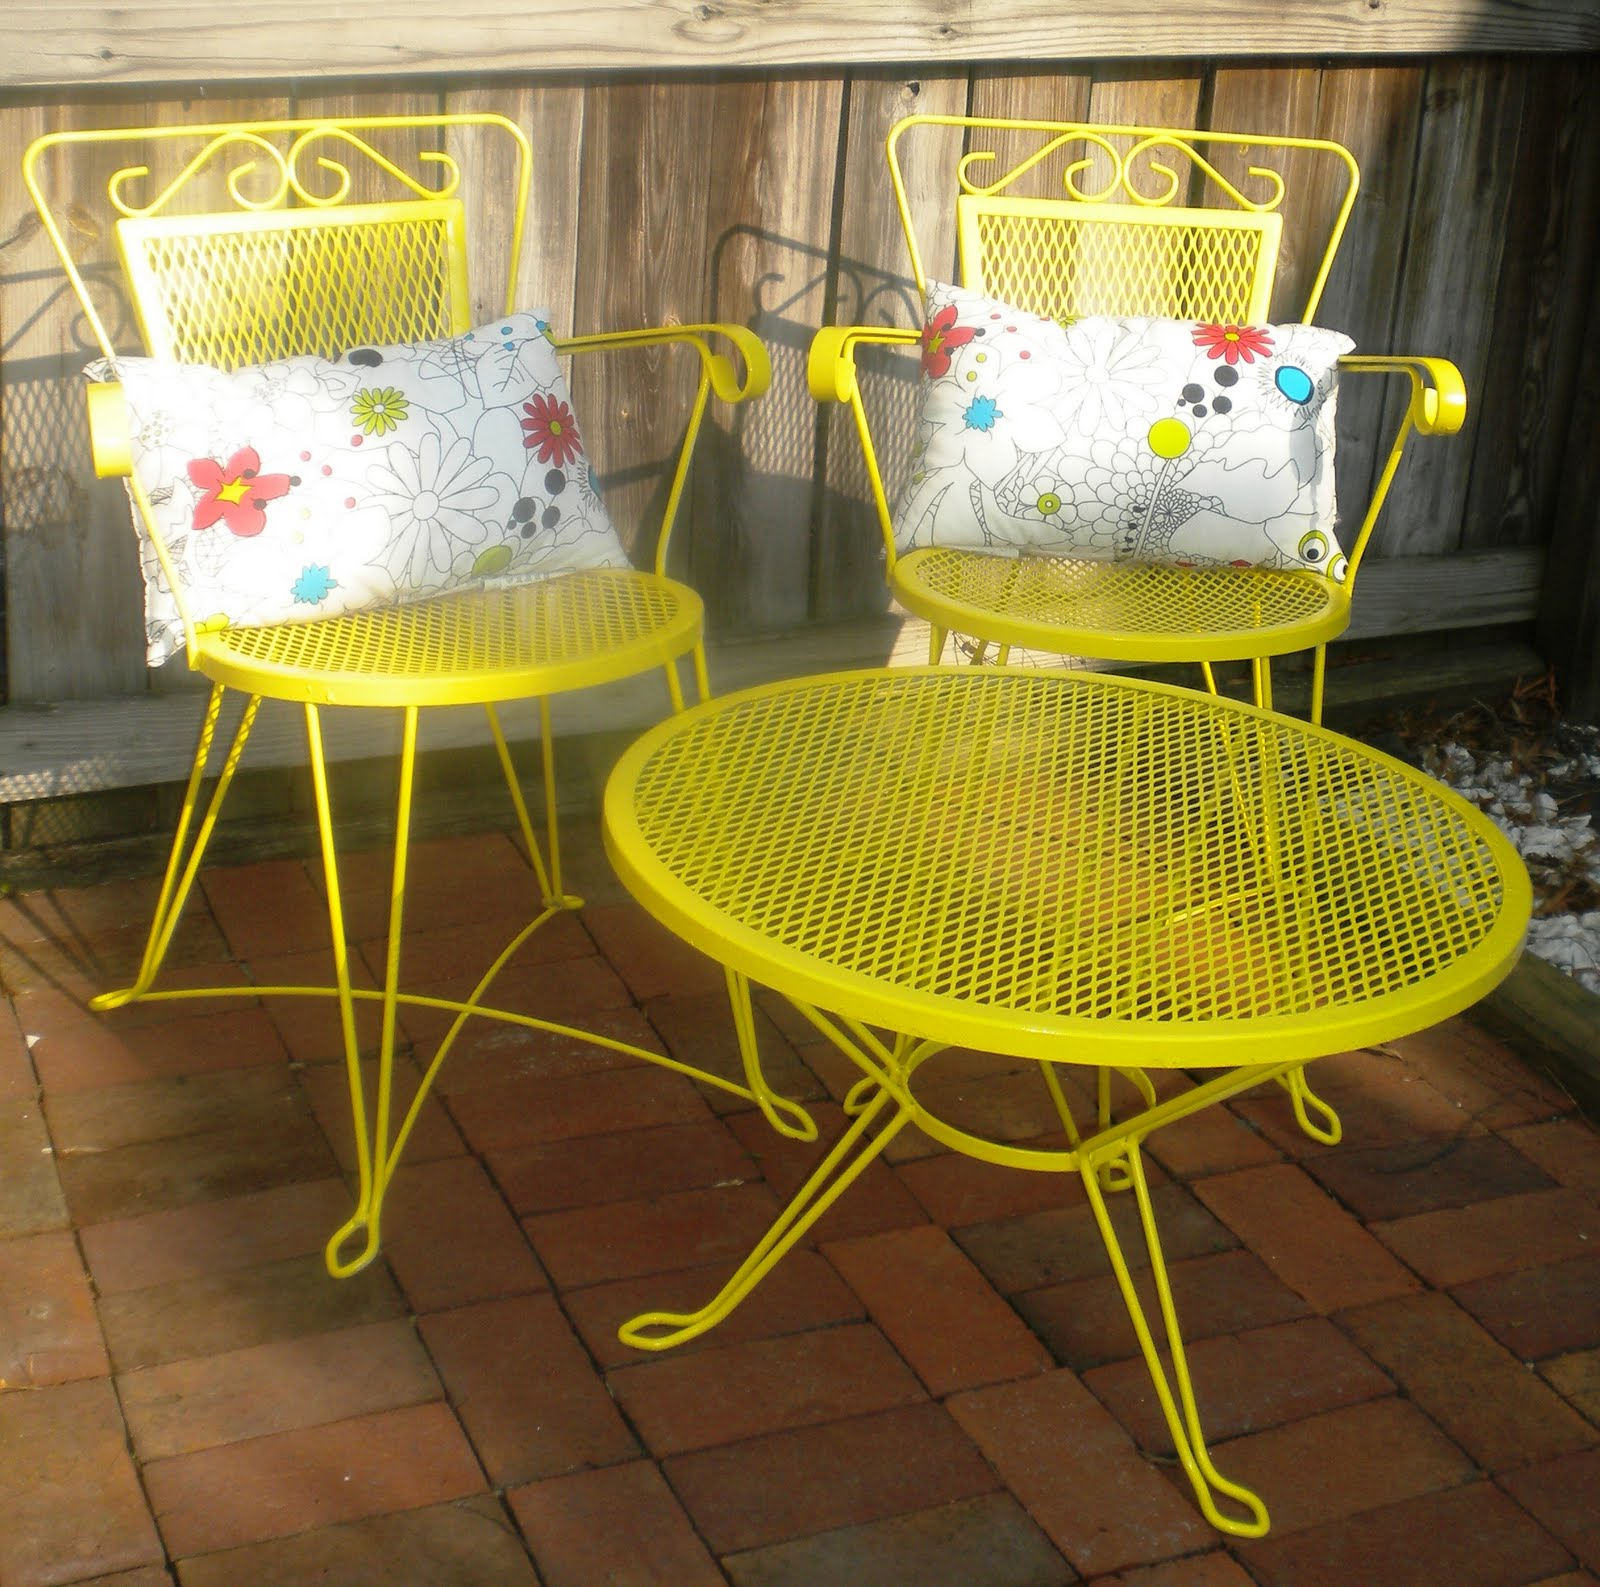 Patio furniture sets with umbrella patio design ideas for Outdoor furniture yellow